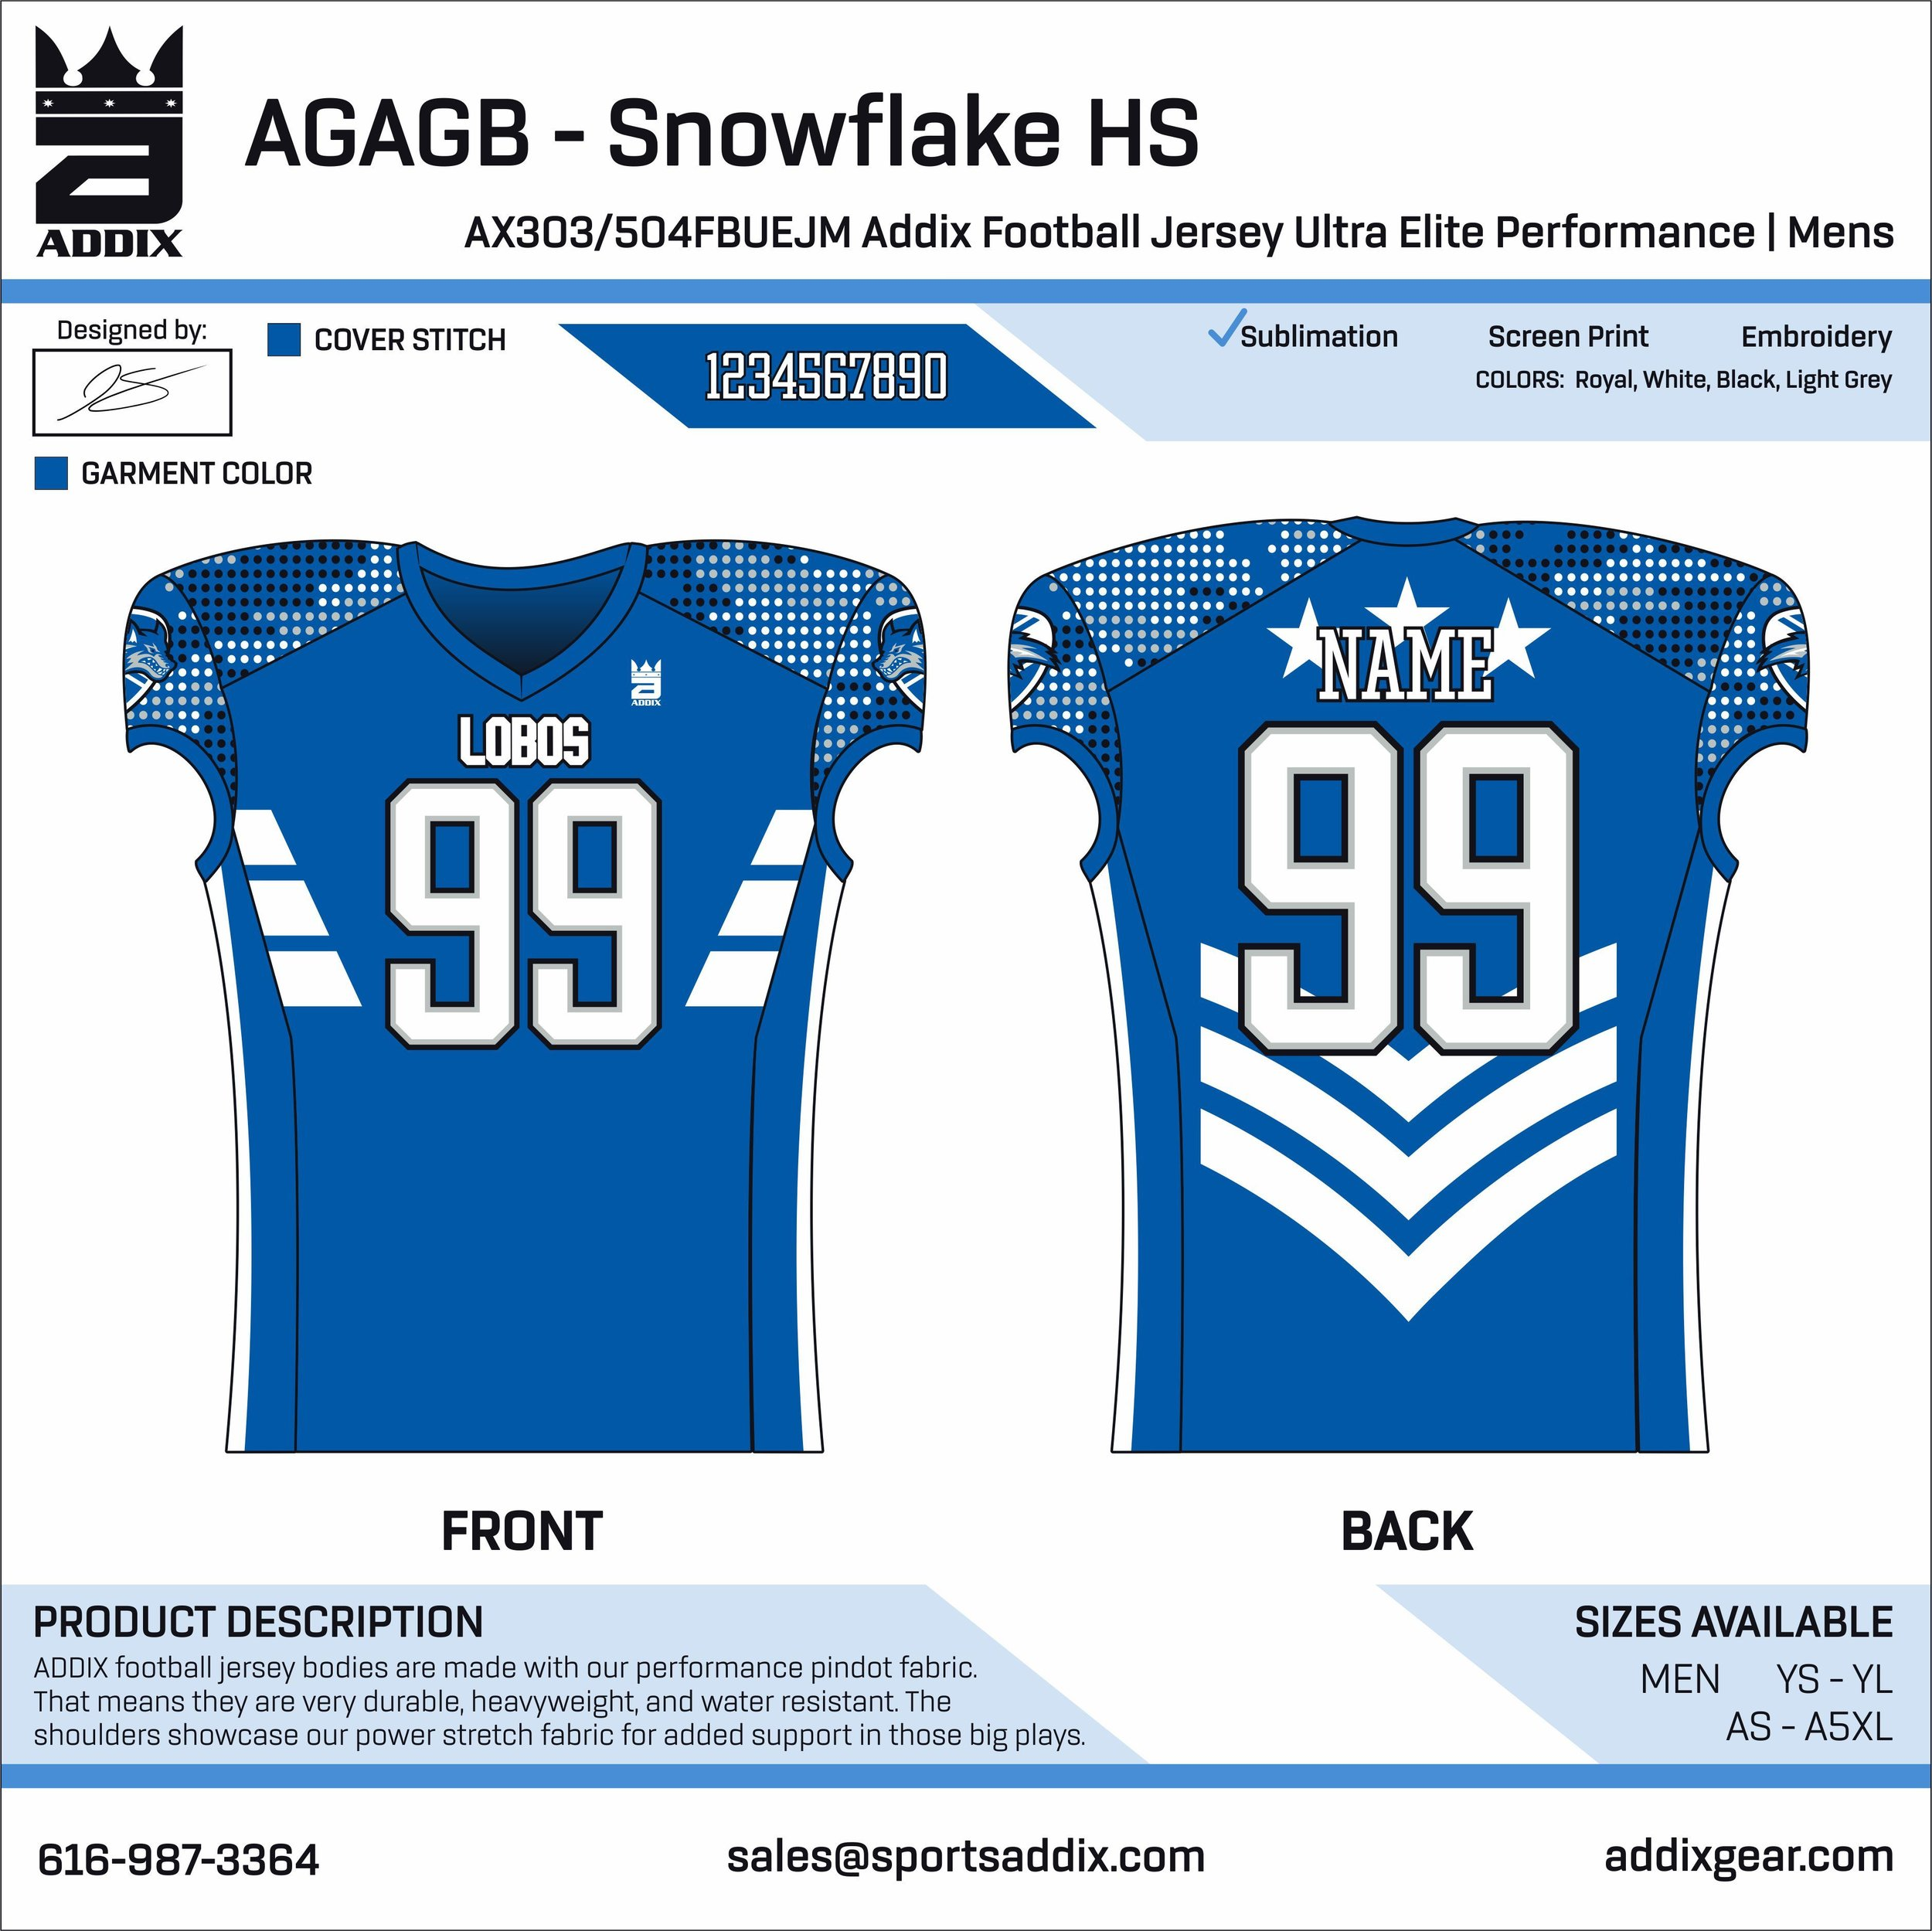 AGAGB - Snowflake HS_2018_7-16_JE_UEP Football Jersey (1).jpg